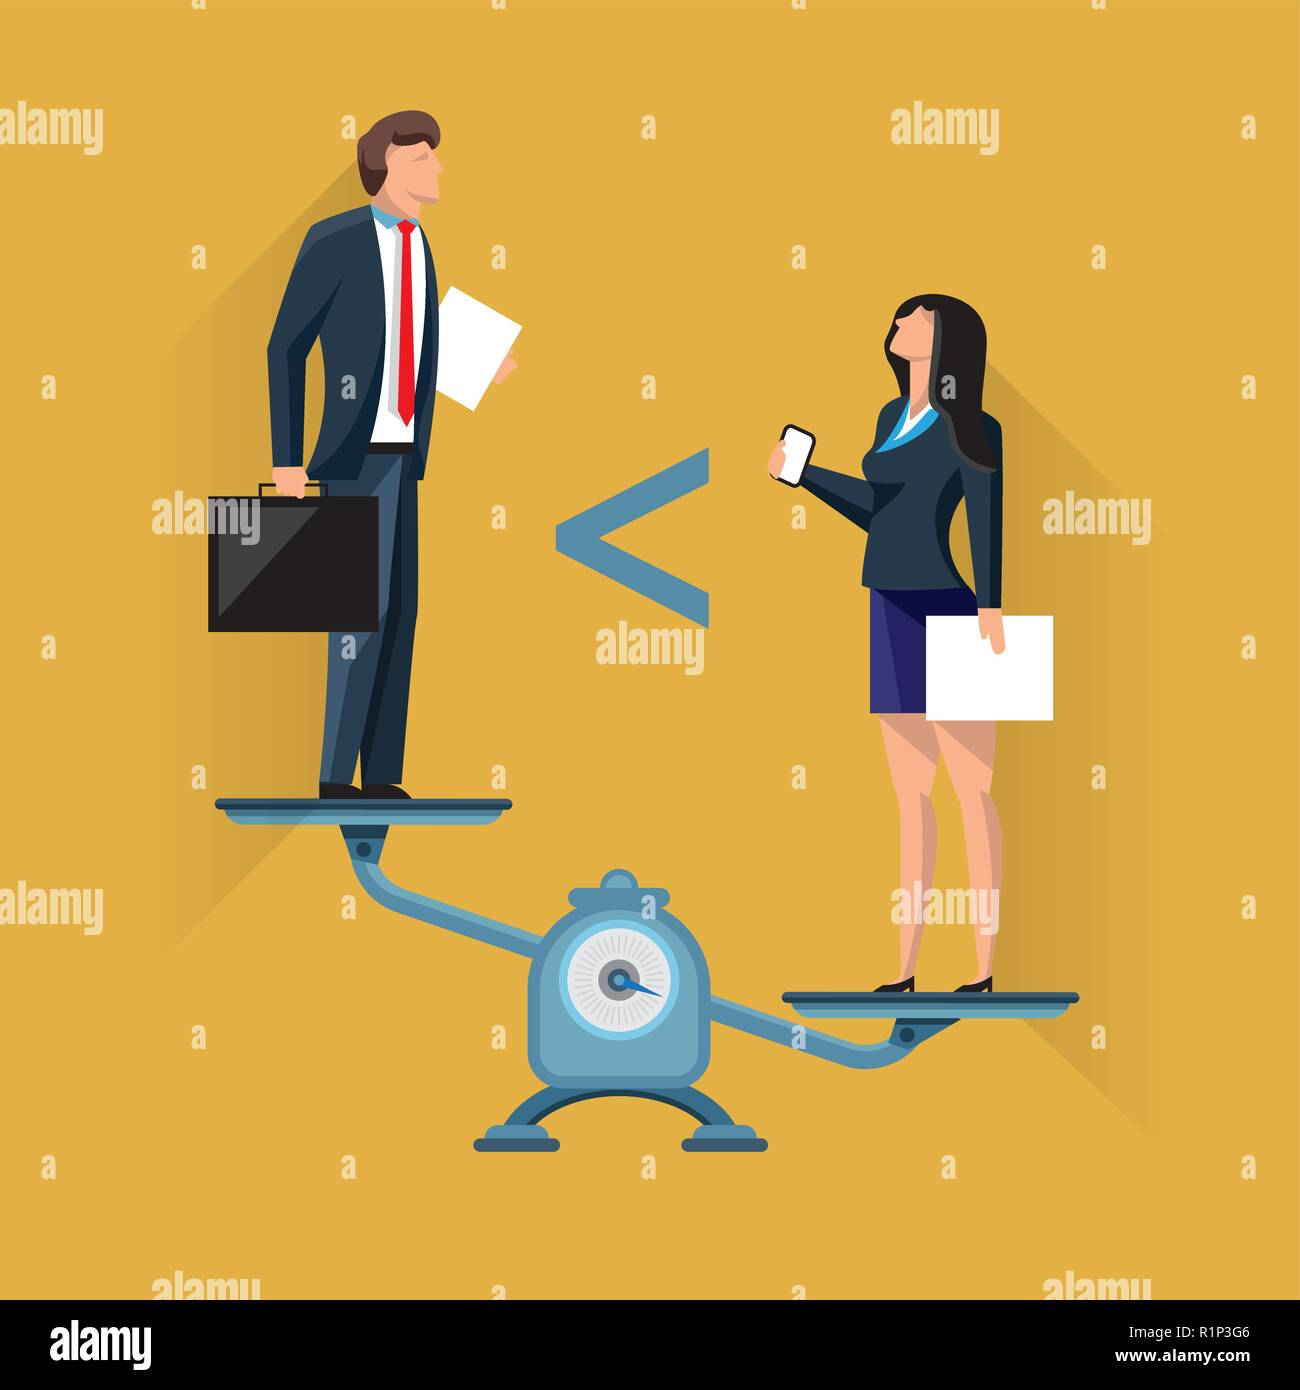 Unequal position of businesspeople on scales - Stock Image